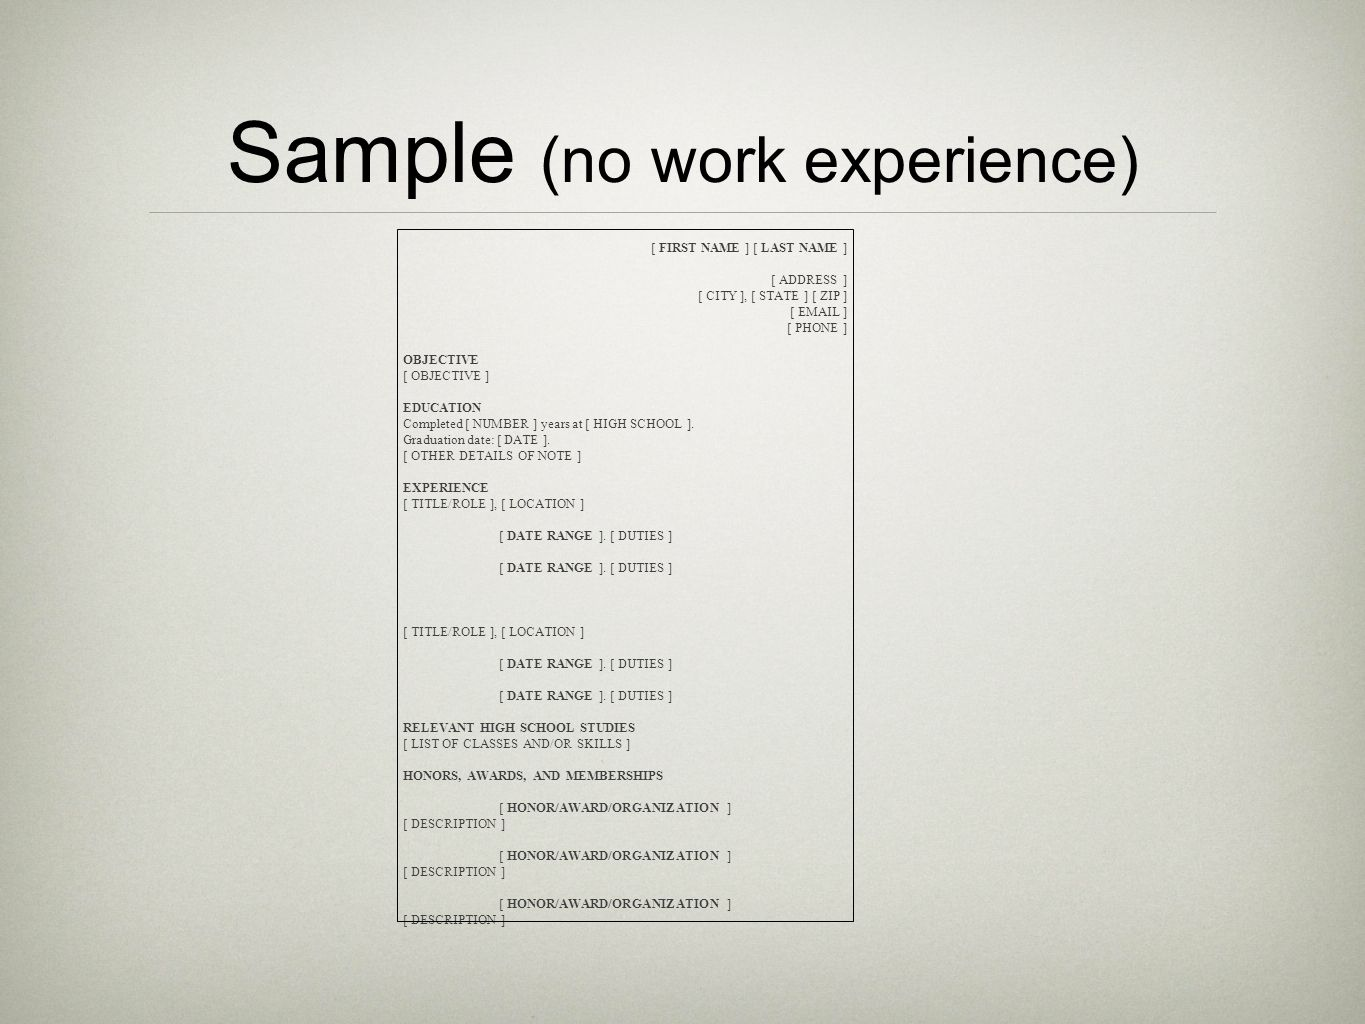 Sample (no work experience)